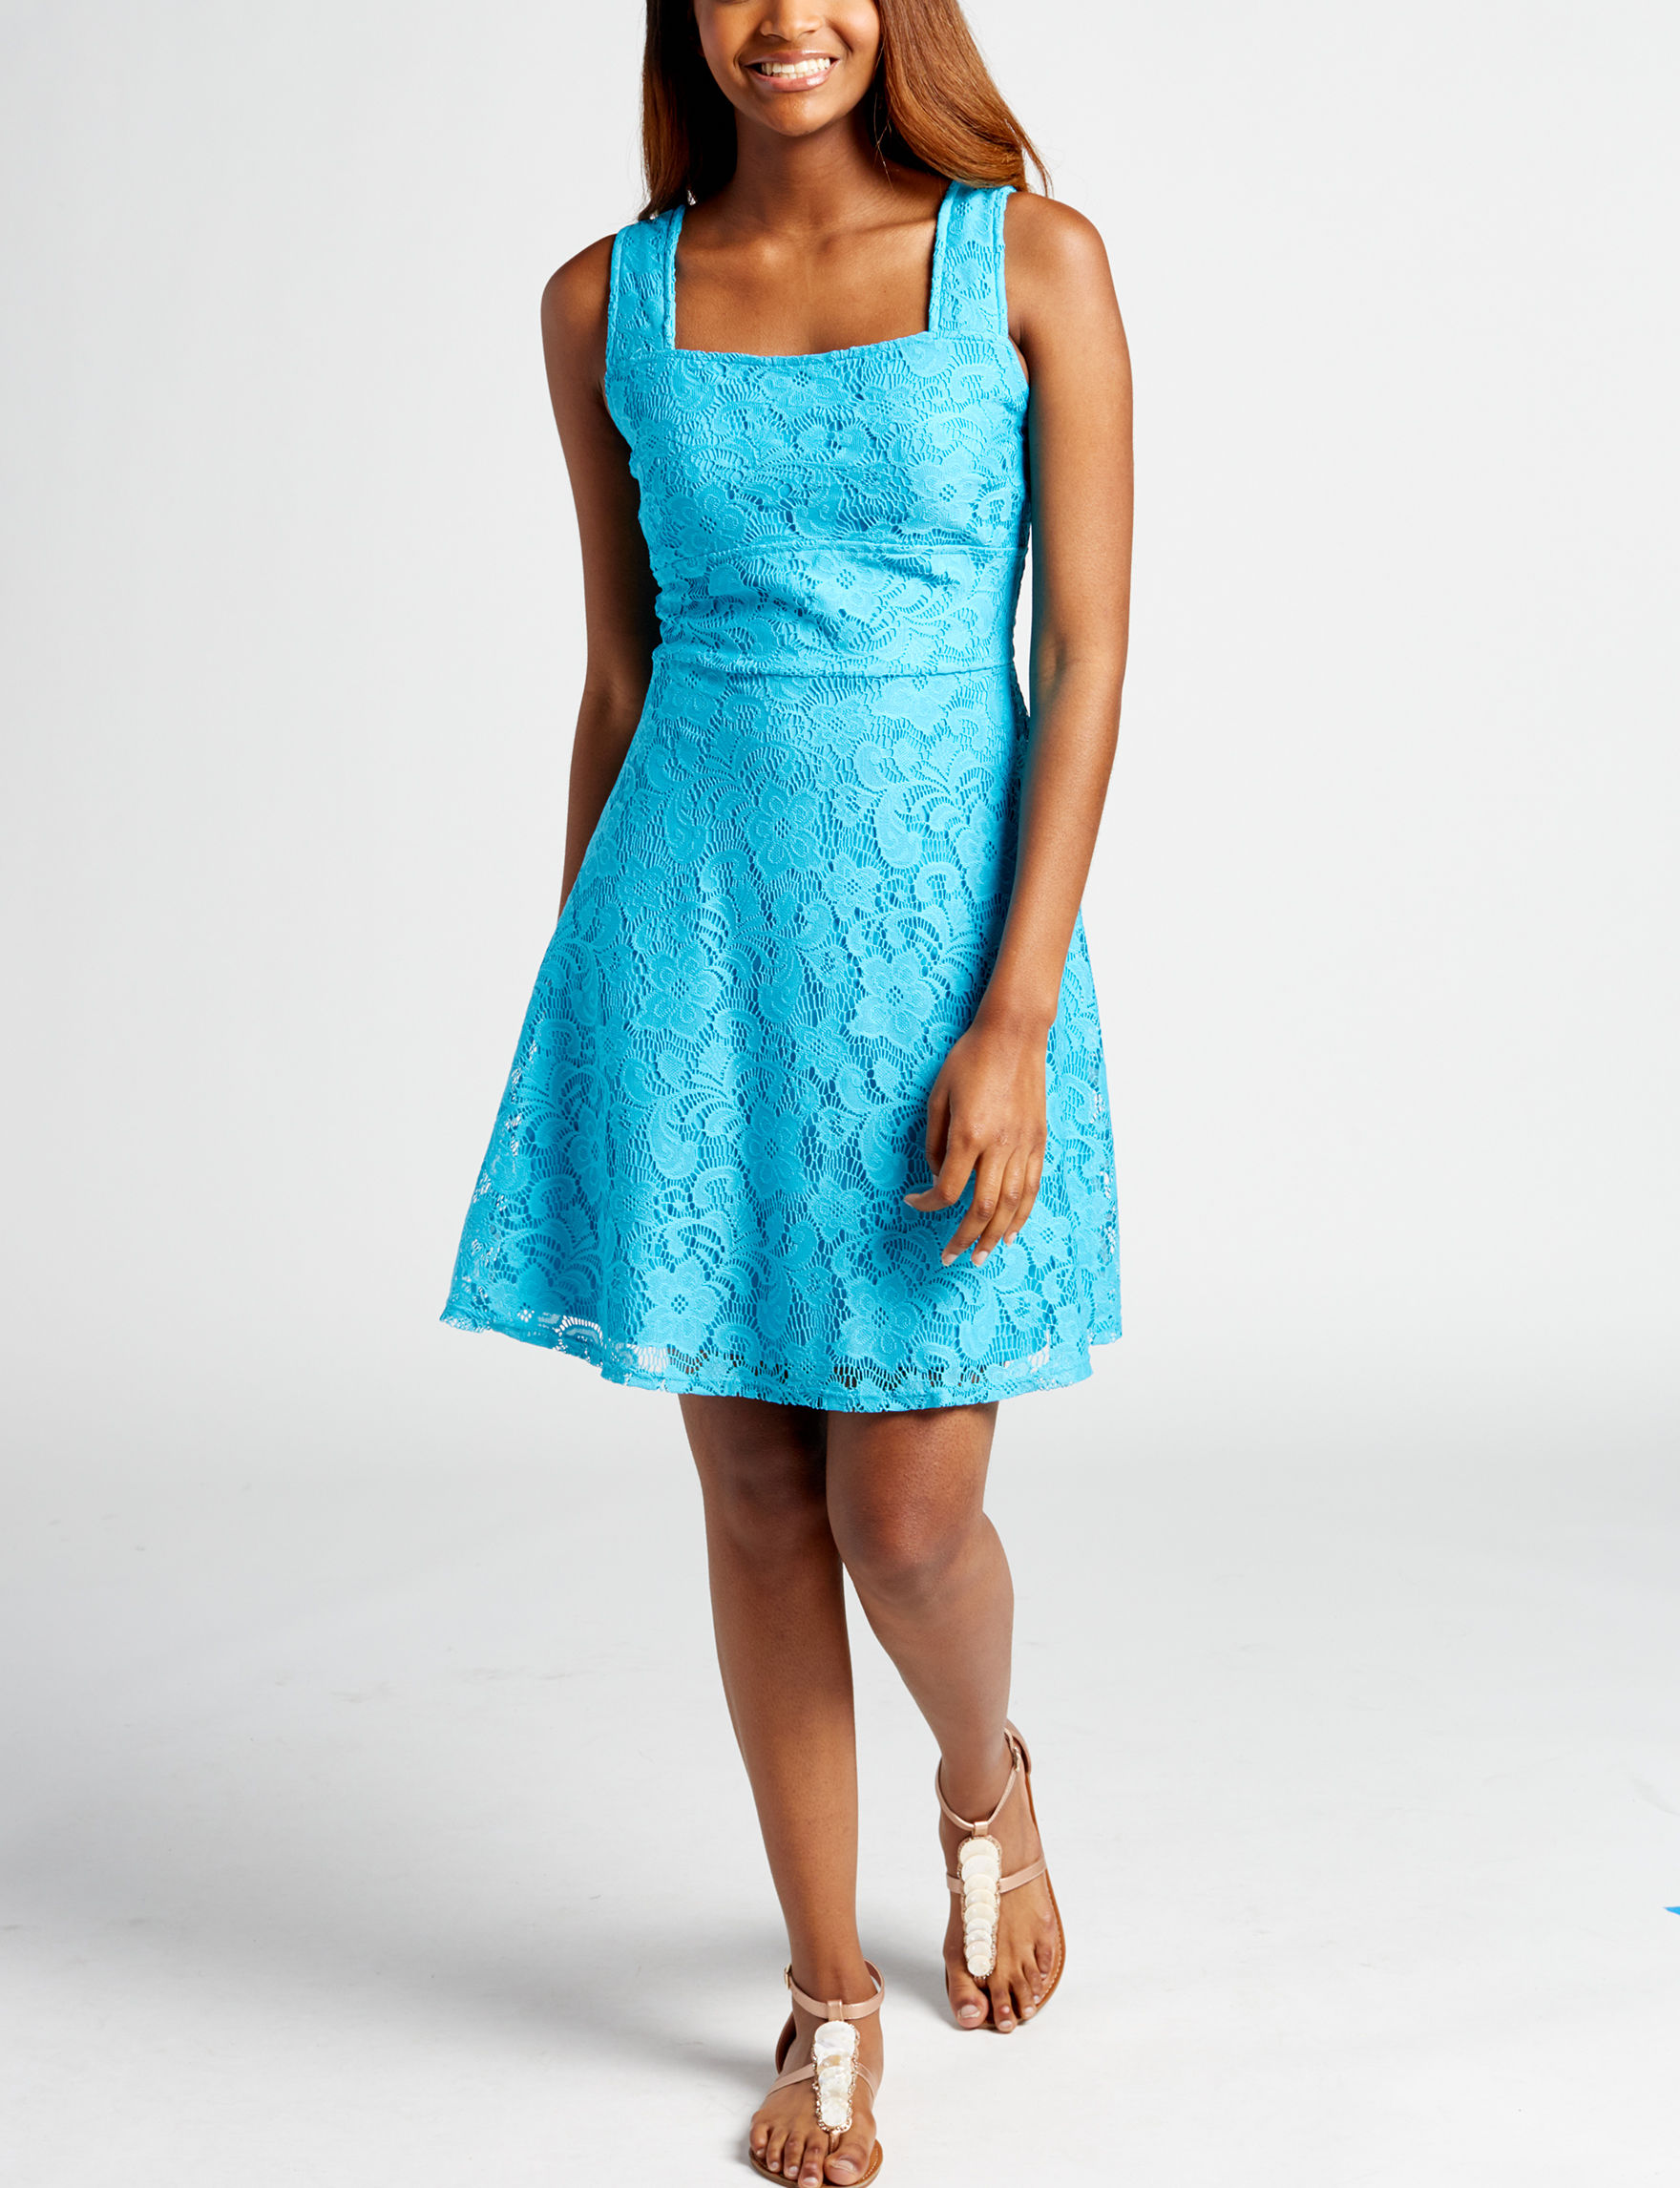 BeBop Turquoise Everyday & Casual Fit & Flare Dresses